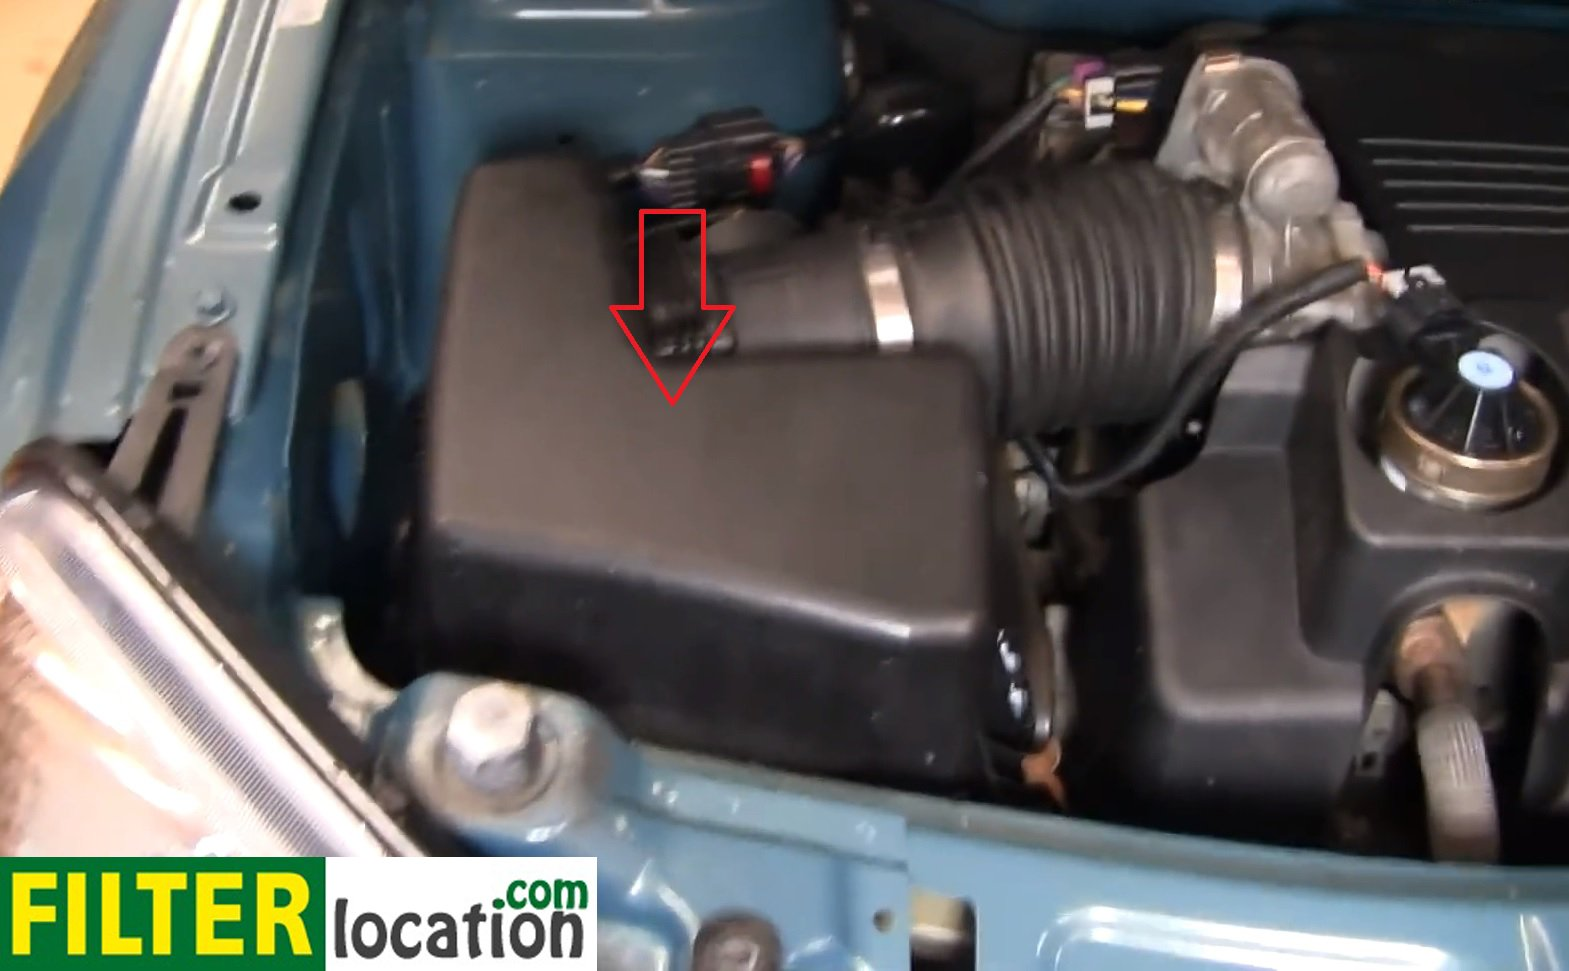 Air Filter Location On Chevy Equinox on Chevy Air Filter Location